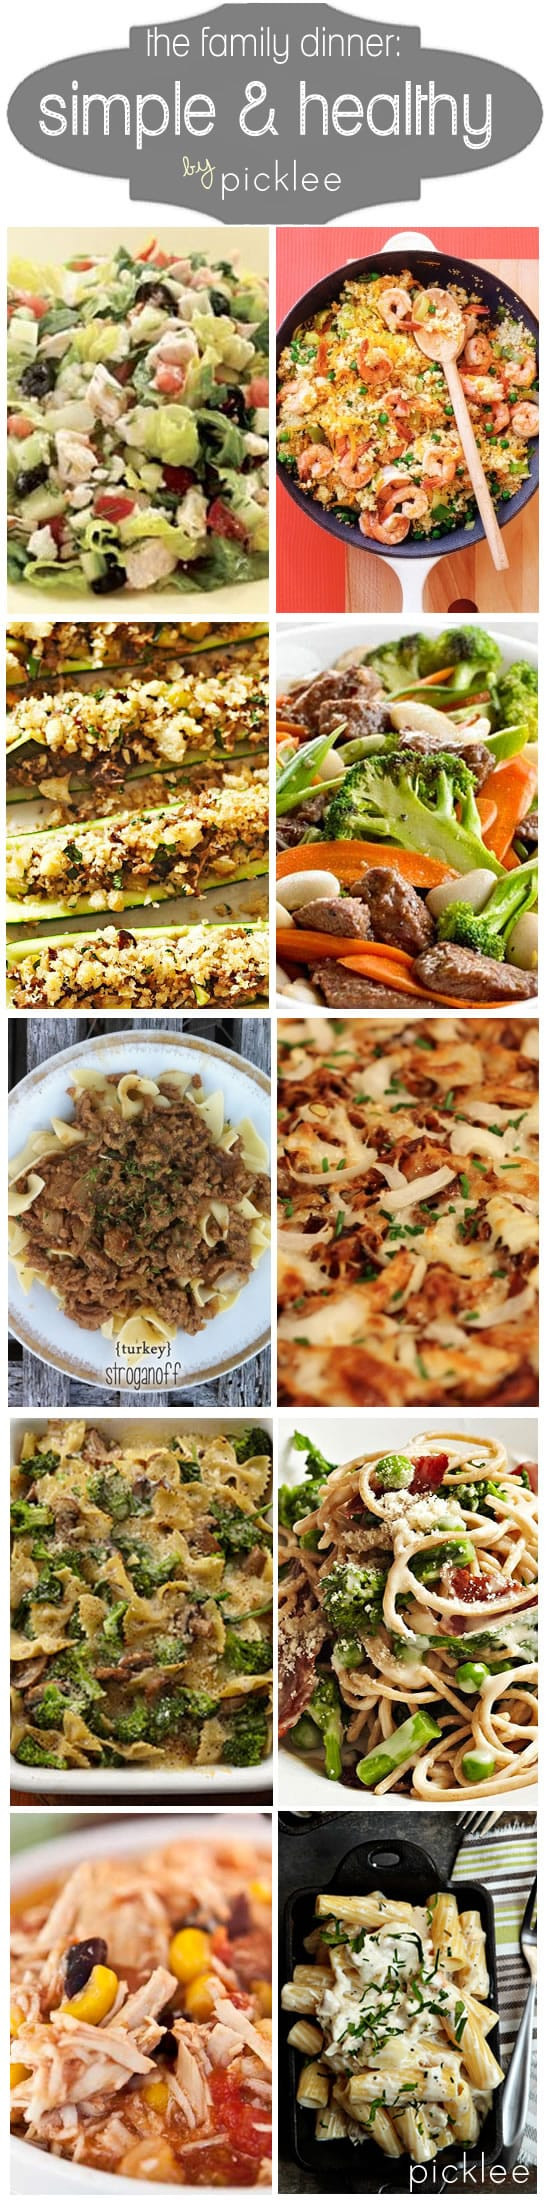 Quick Healthy Family Dinners  10 Simple & Healthy Weeknight Dinners [recipes] Picklee